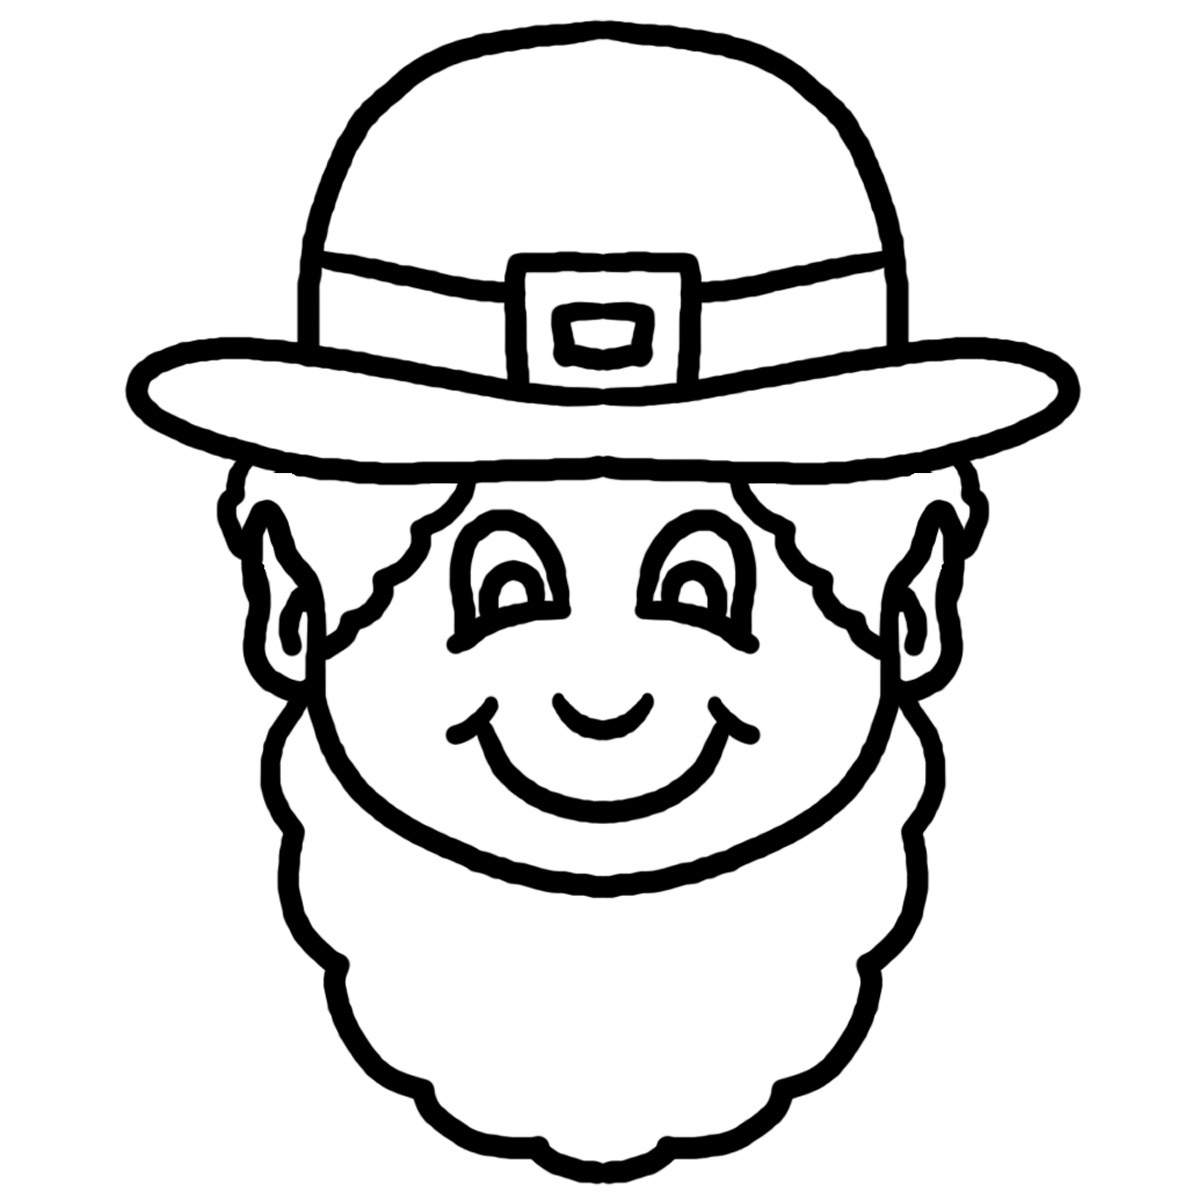 This Black And White Cartoon Leprechaun Face Clip Art Illustration Can